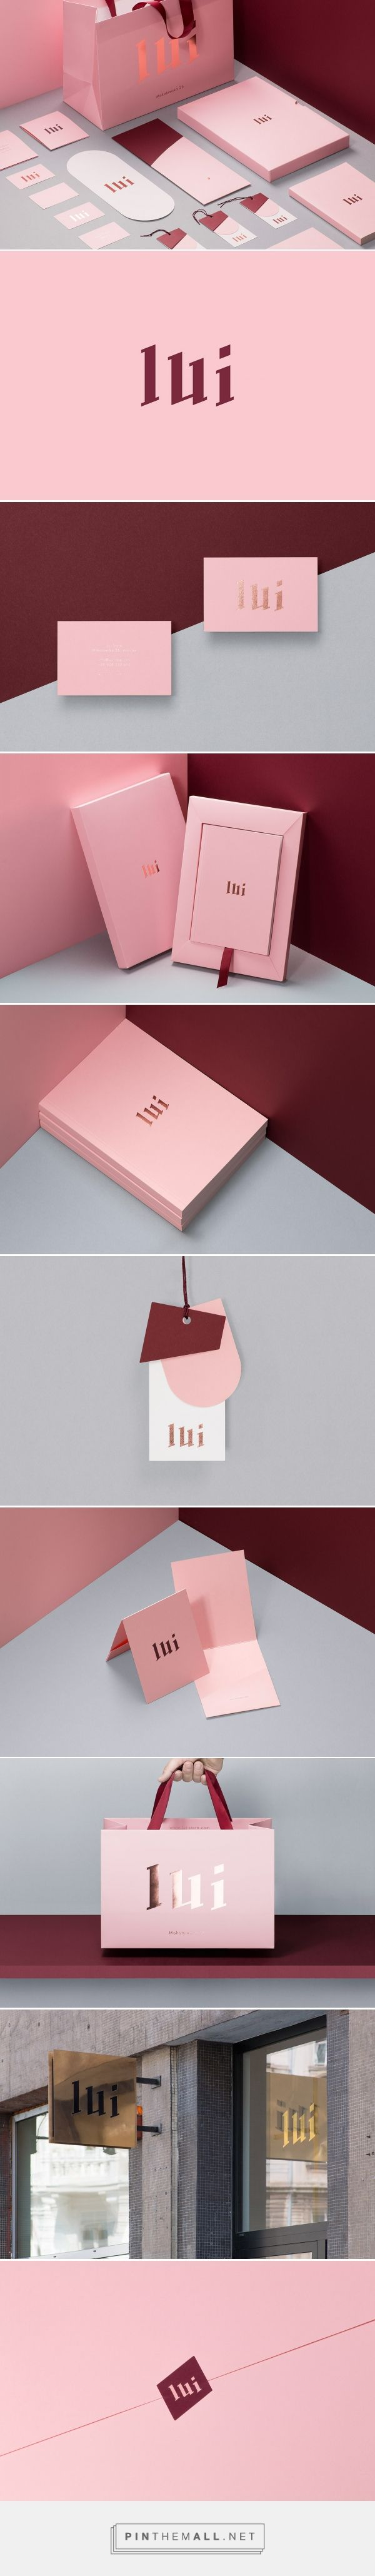 Lui Store Fashion Boutique Branding by Gustaw Dmoswski | Fivestar Branding Agency – Design and Branding Agency & Curated Inspiration Gallery | Instagram, Pinterest & Twitter: @TrustVital